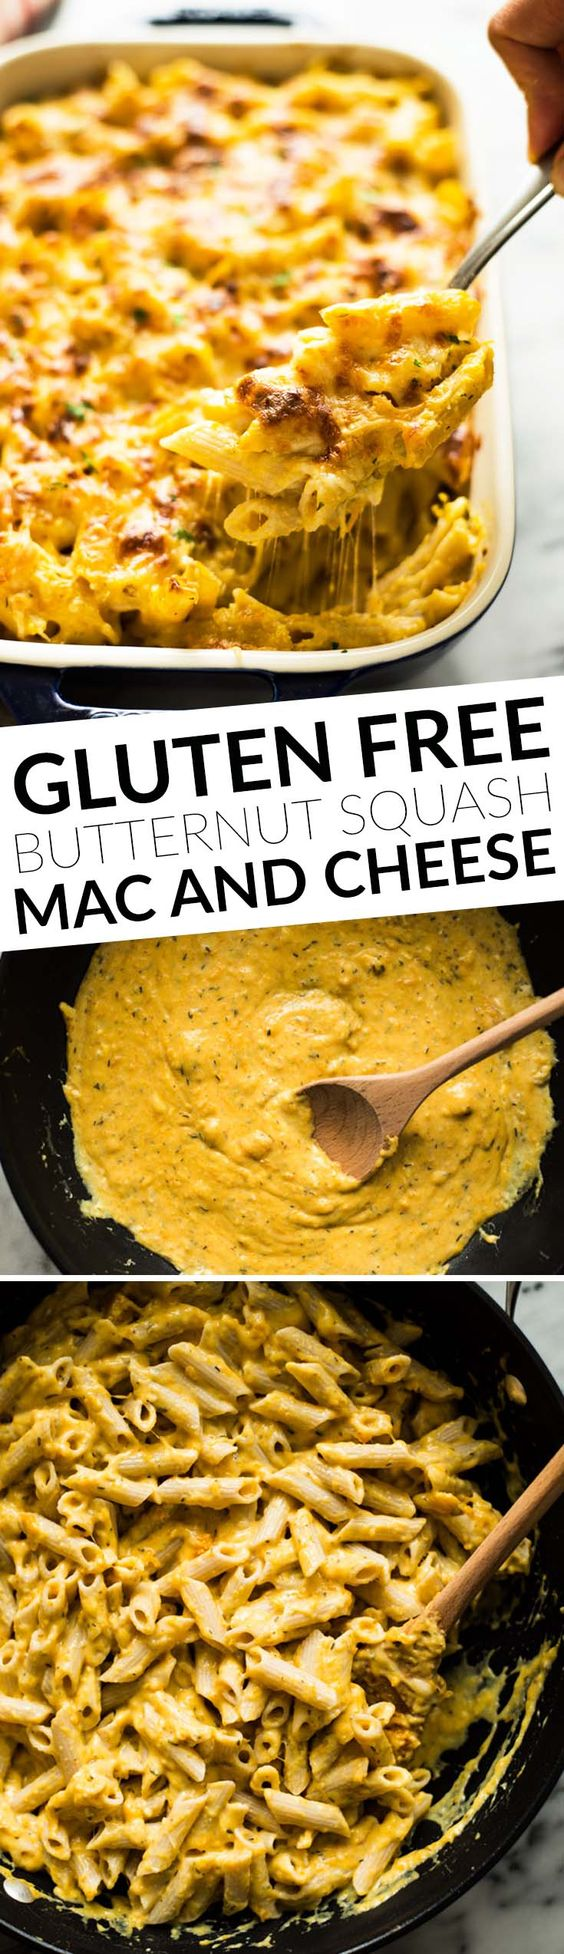 Butternut Squash Baked Mac and Cheese - gluten free and healthier ...